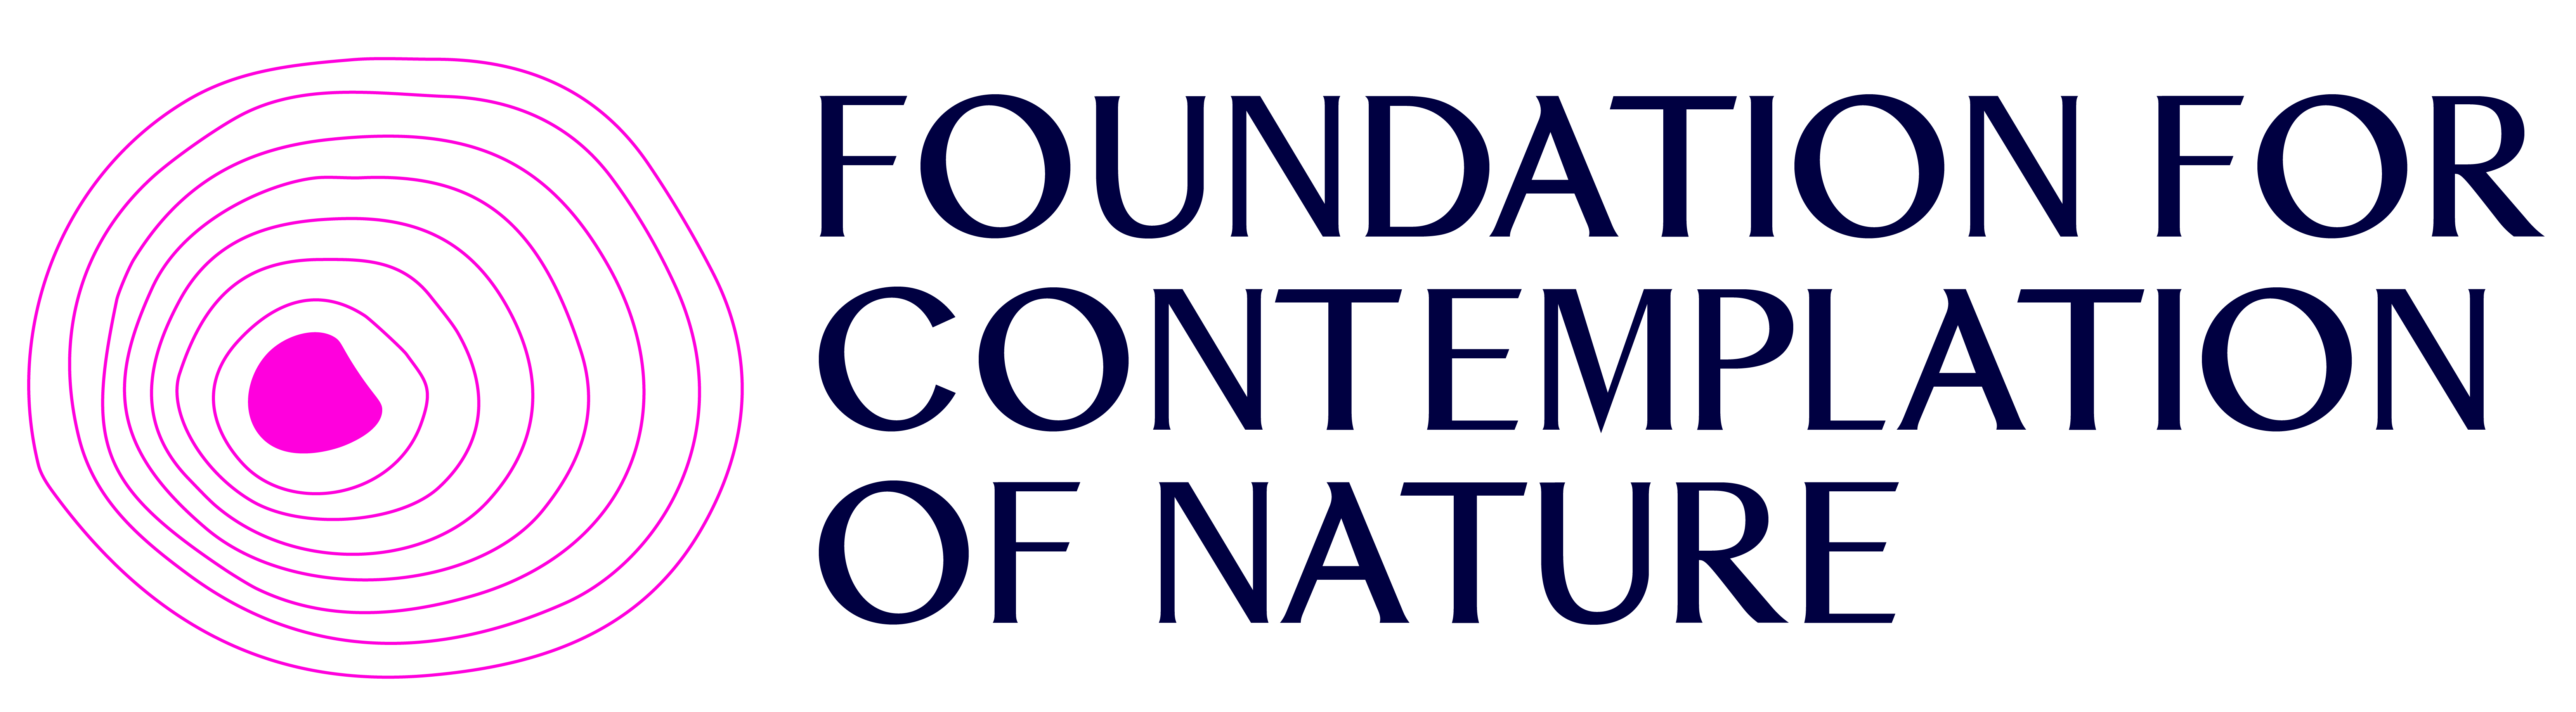 The Foundation for Contemplation of Nature